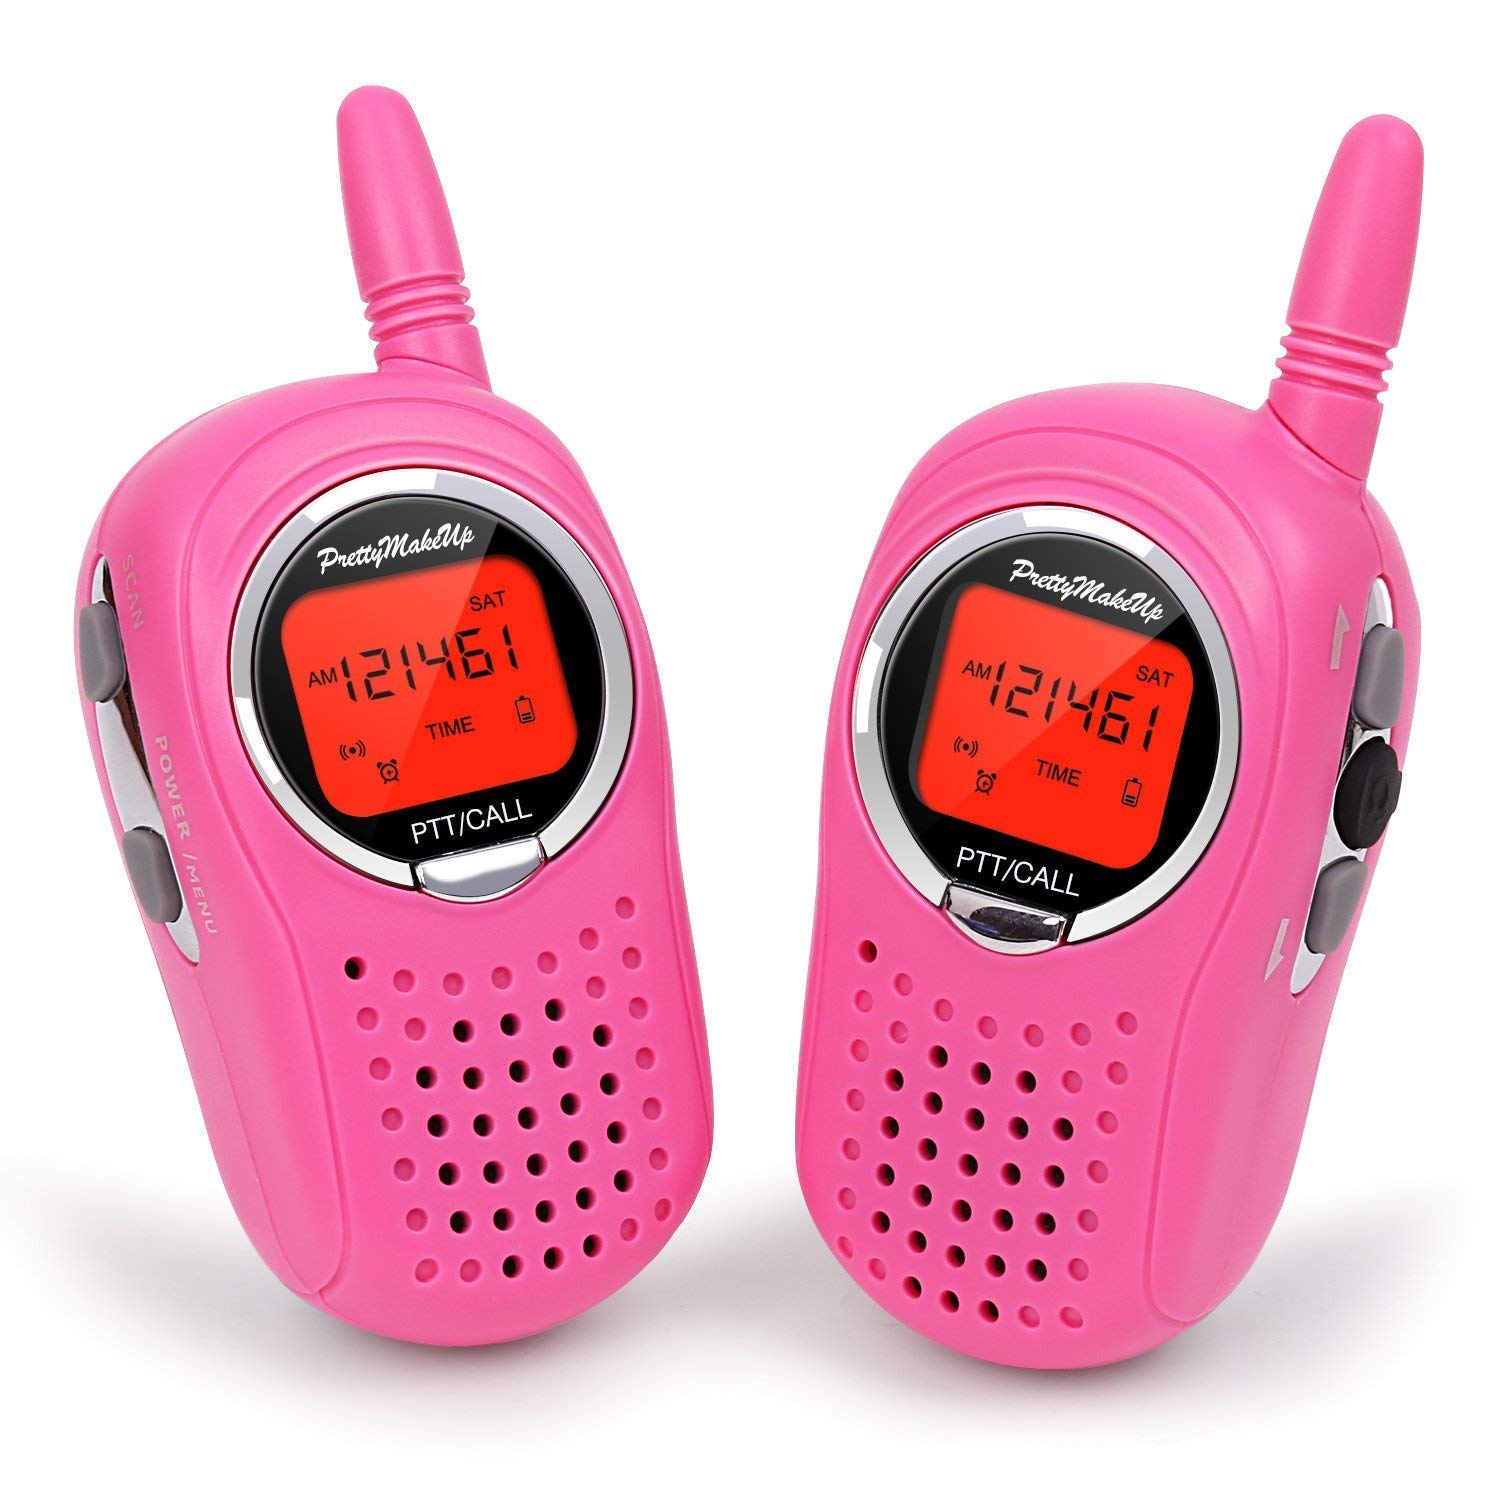 Kids Walkie Talkies, B-Bonnie 2 Way Radio 3 Miles UHF Walkie Talkies 22 Channel FRS/GMRS Kids Walkie Talkies (1 Pair) Pink, Mini Walkie Talkie Toys for Kids/Children